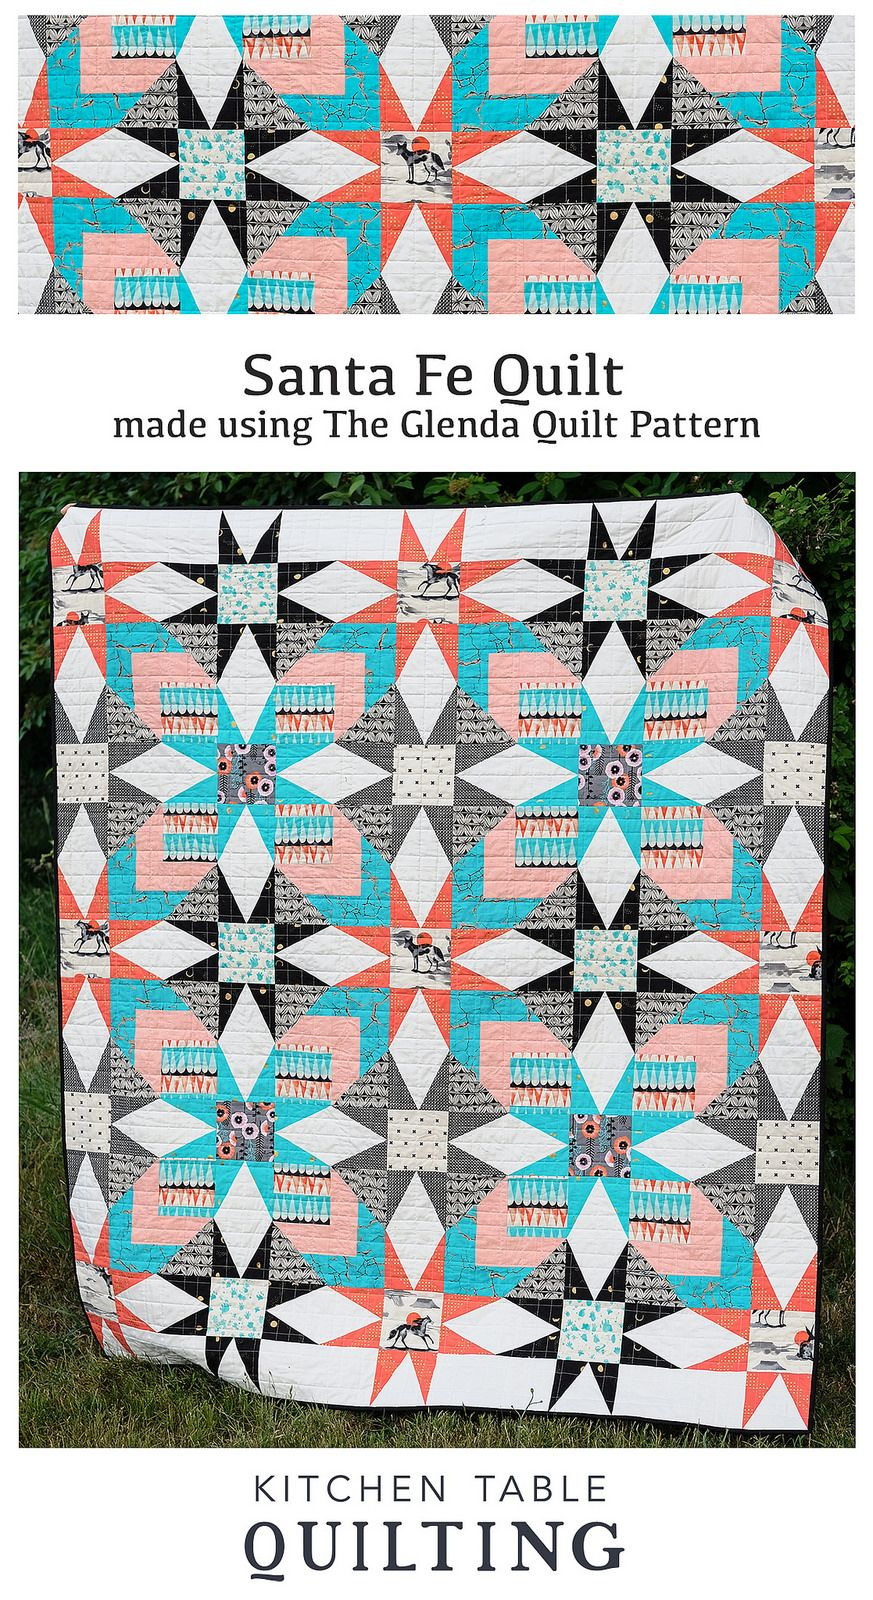 Santa Fe Quilt Quilts Star Quilts Quilt Patterns